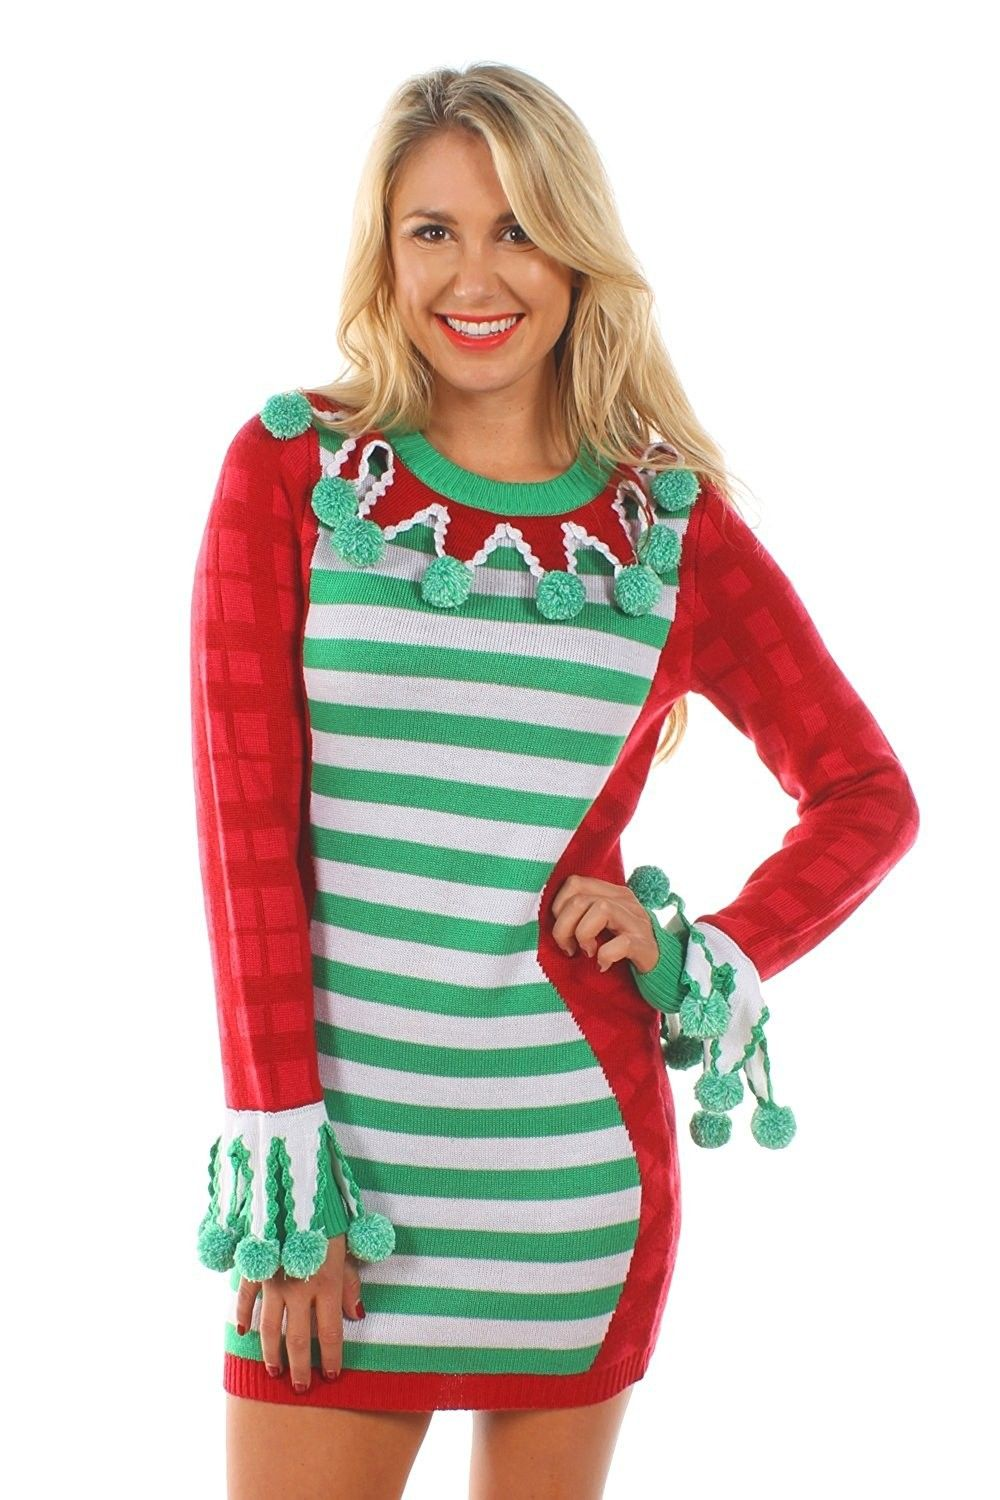 045a96d927c Women s Green and Red Tacky Christmas Sweater Dress - CC12JT71E97 ...